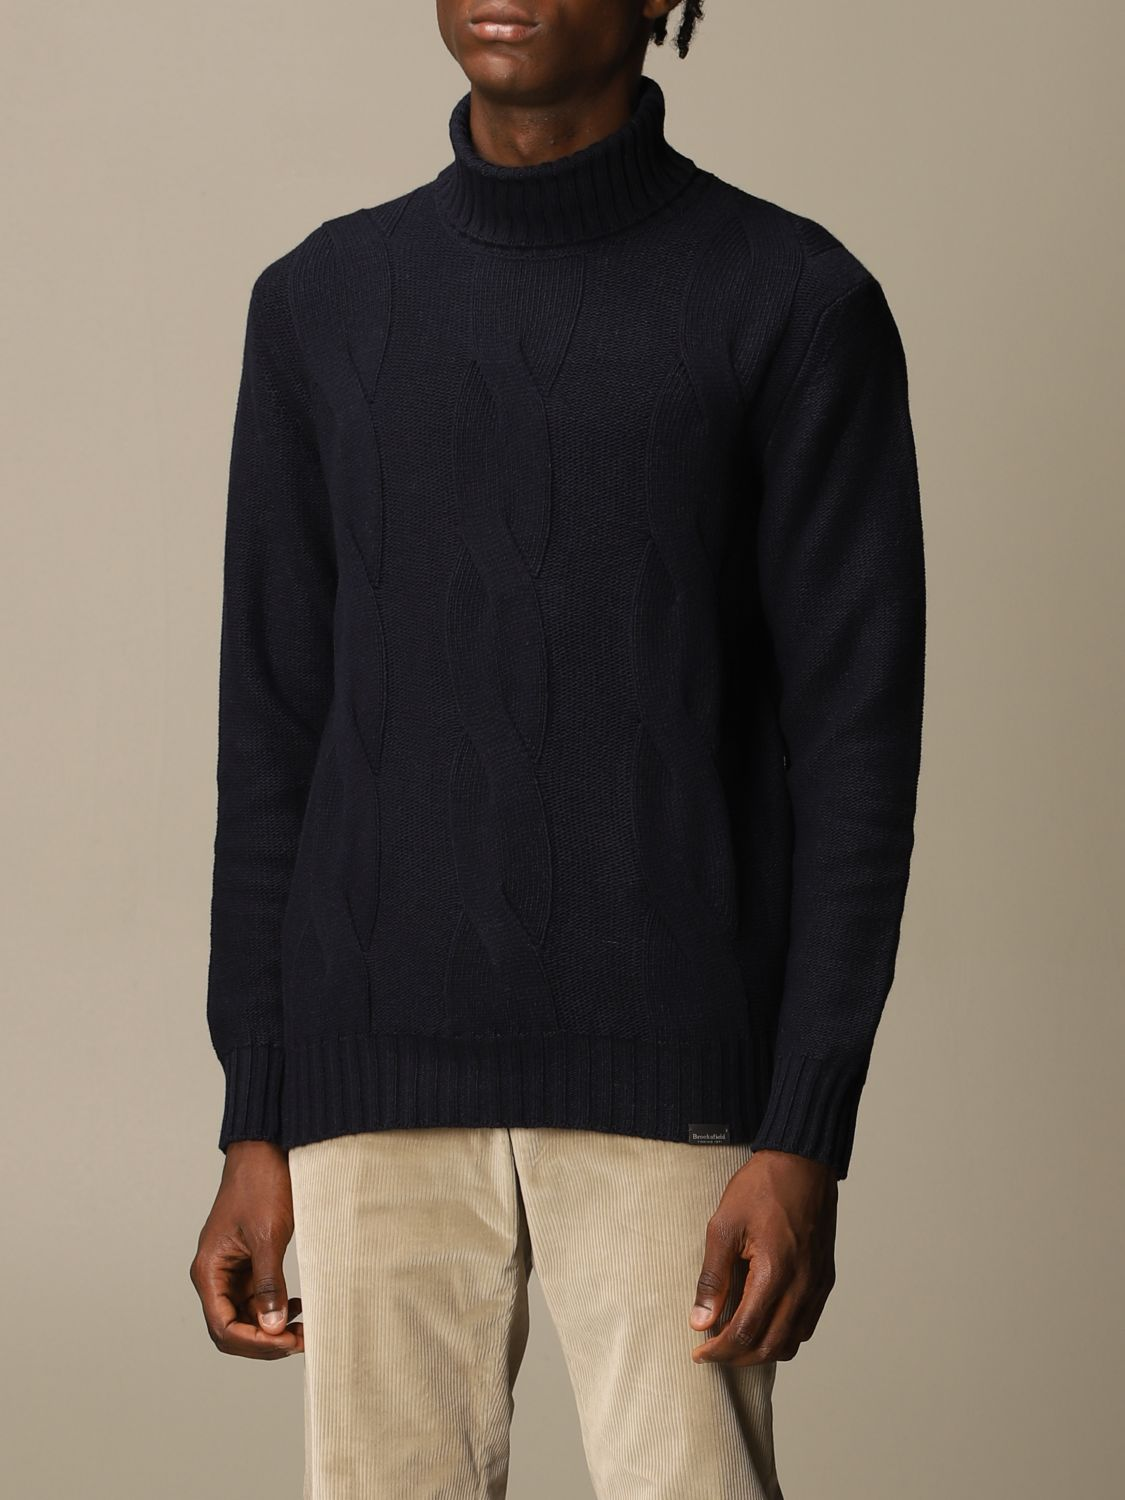 Sweater Brooksfield: Brooksfield turtleneck in wide cable knit blue 2